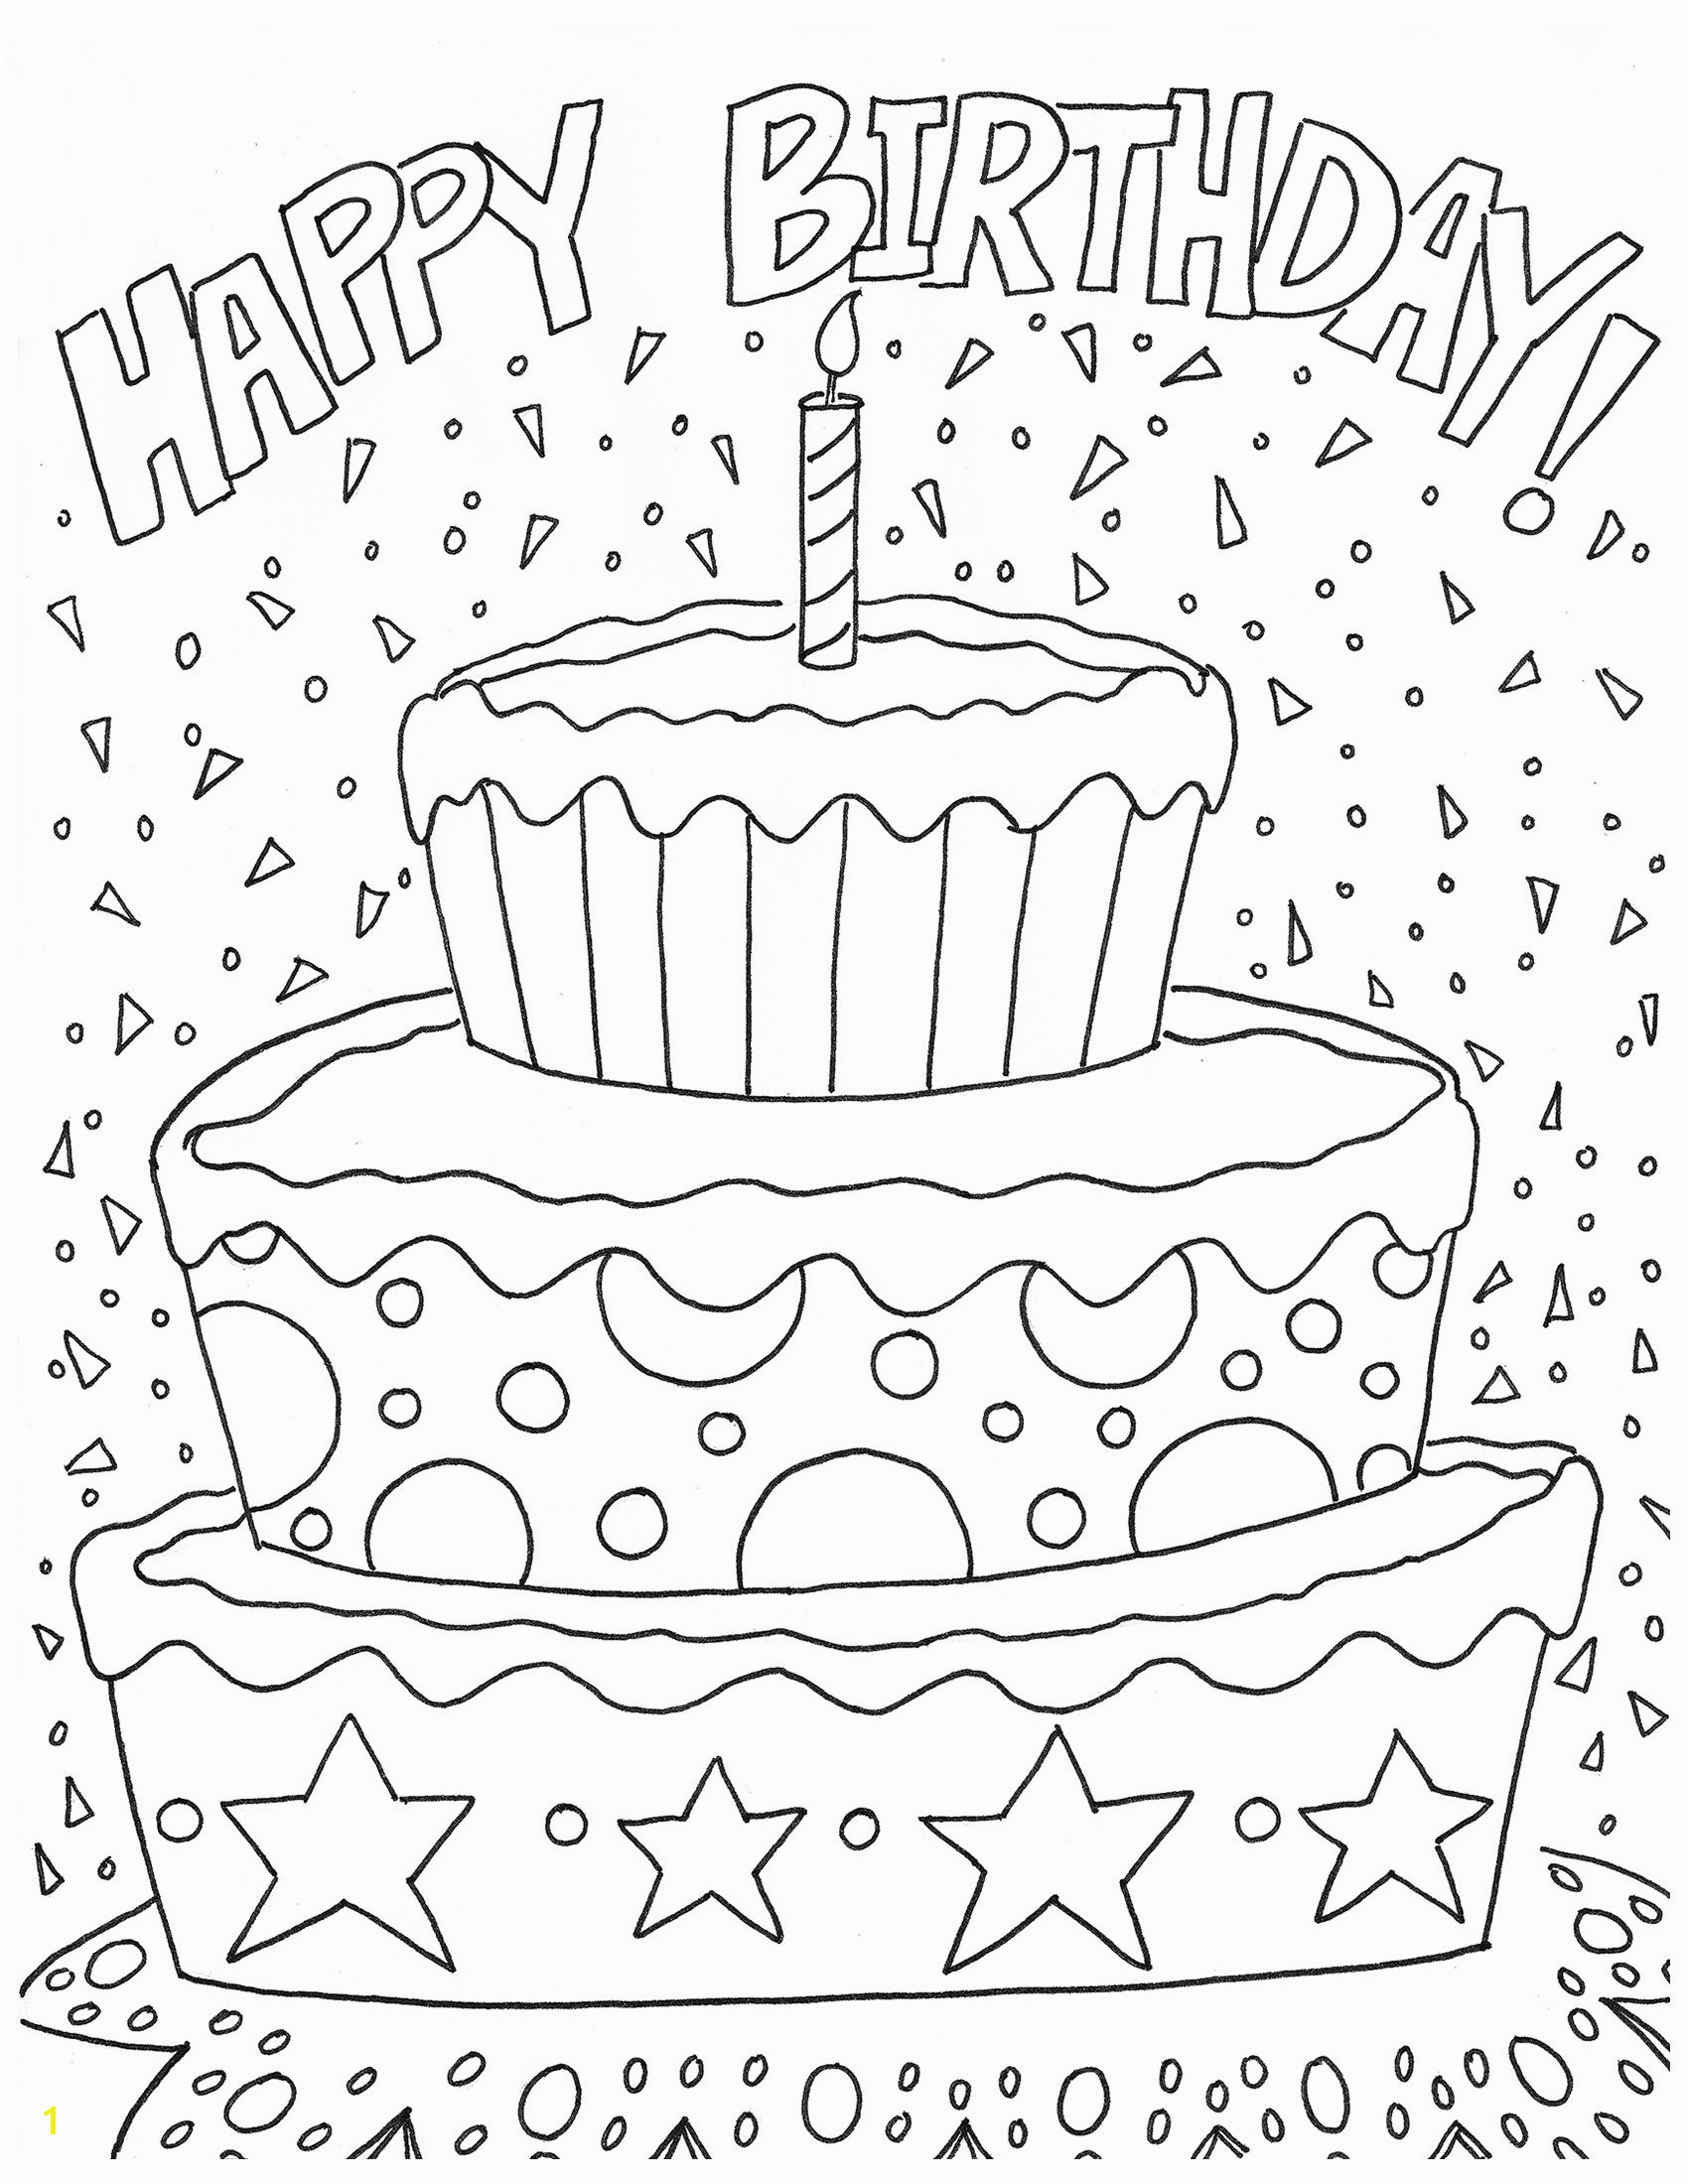 free printable happy birthday coloring pages for kids to print superb free printable happy birthday coloring